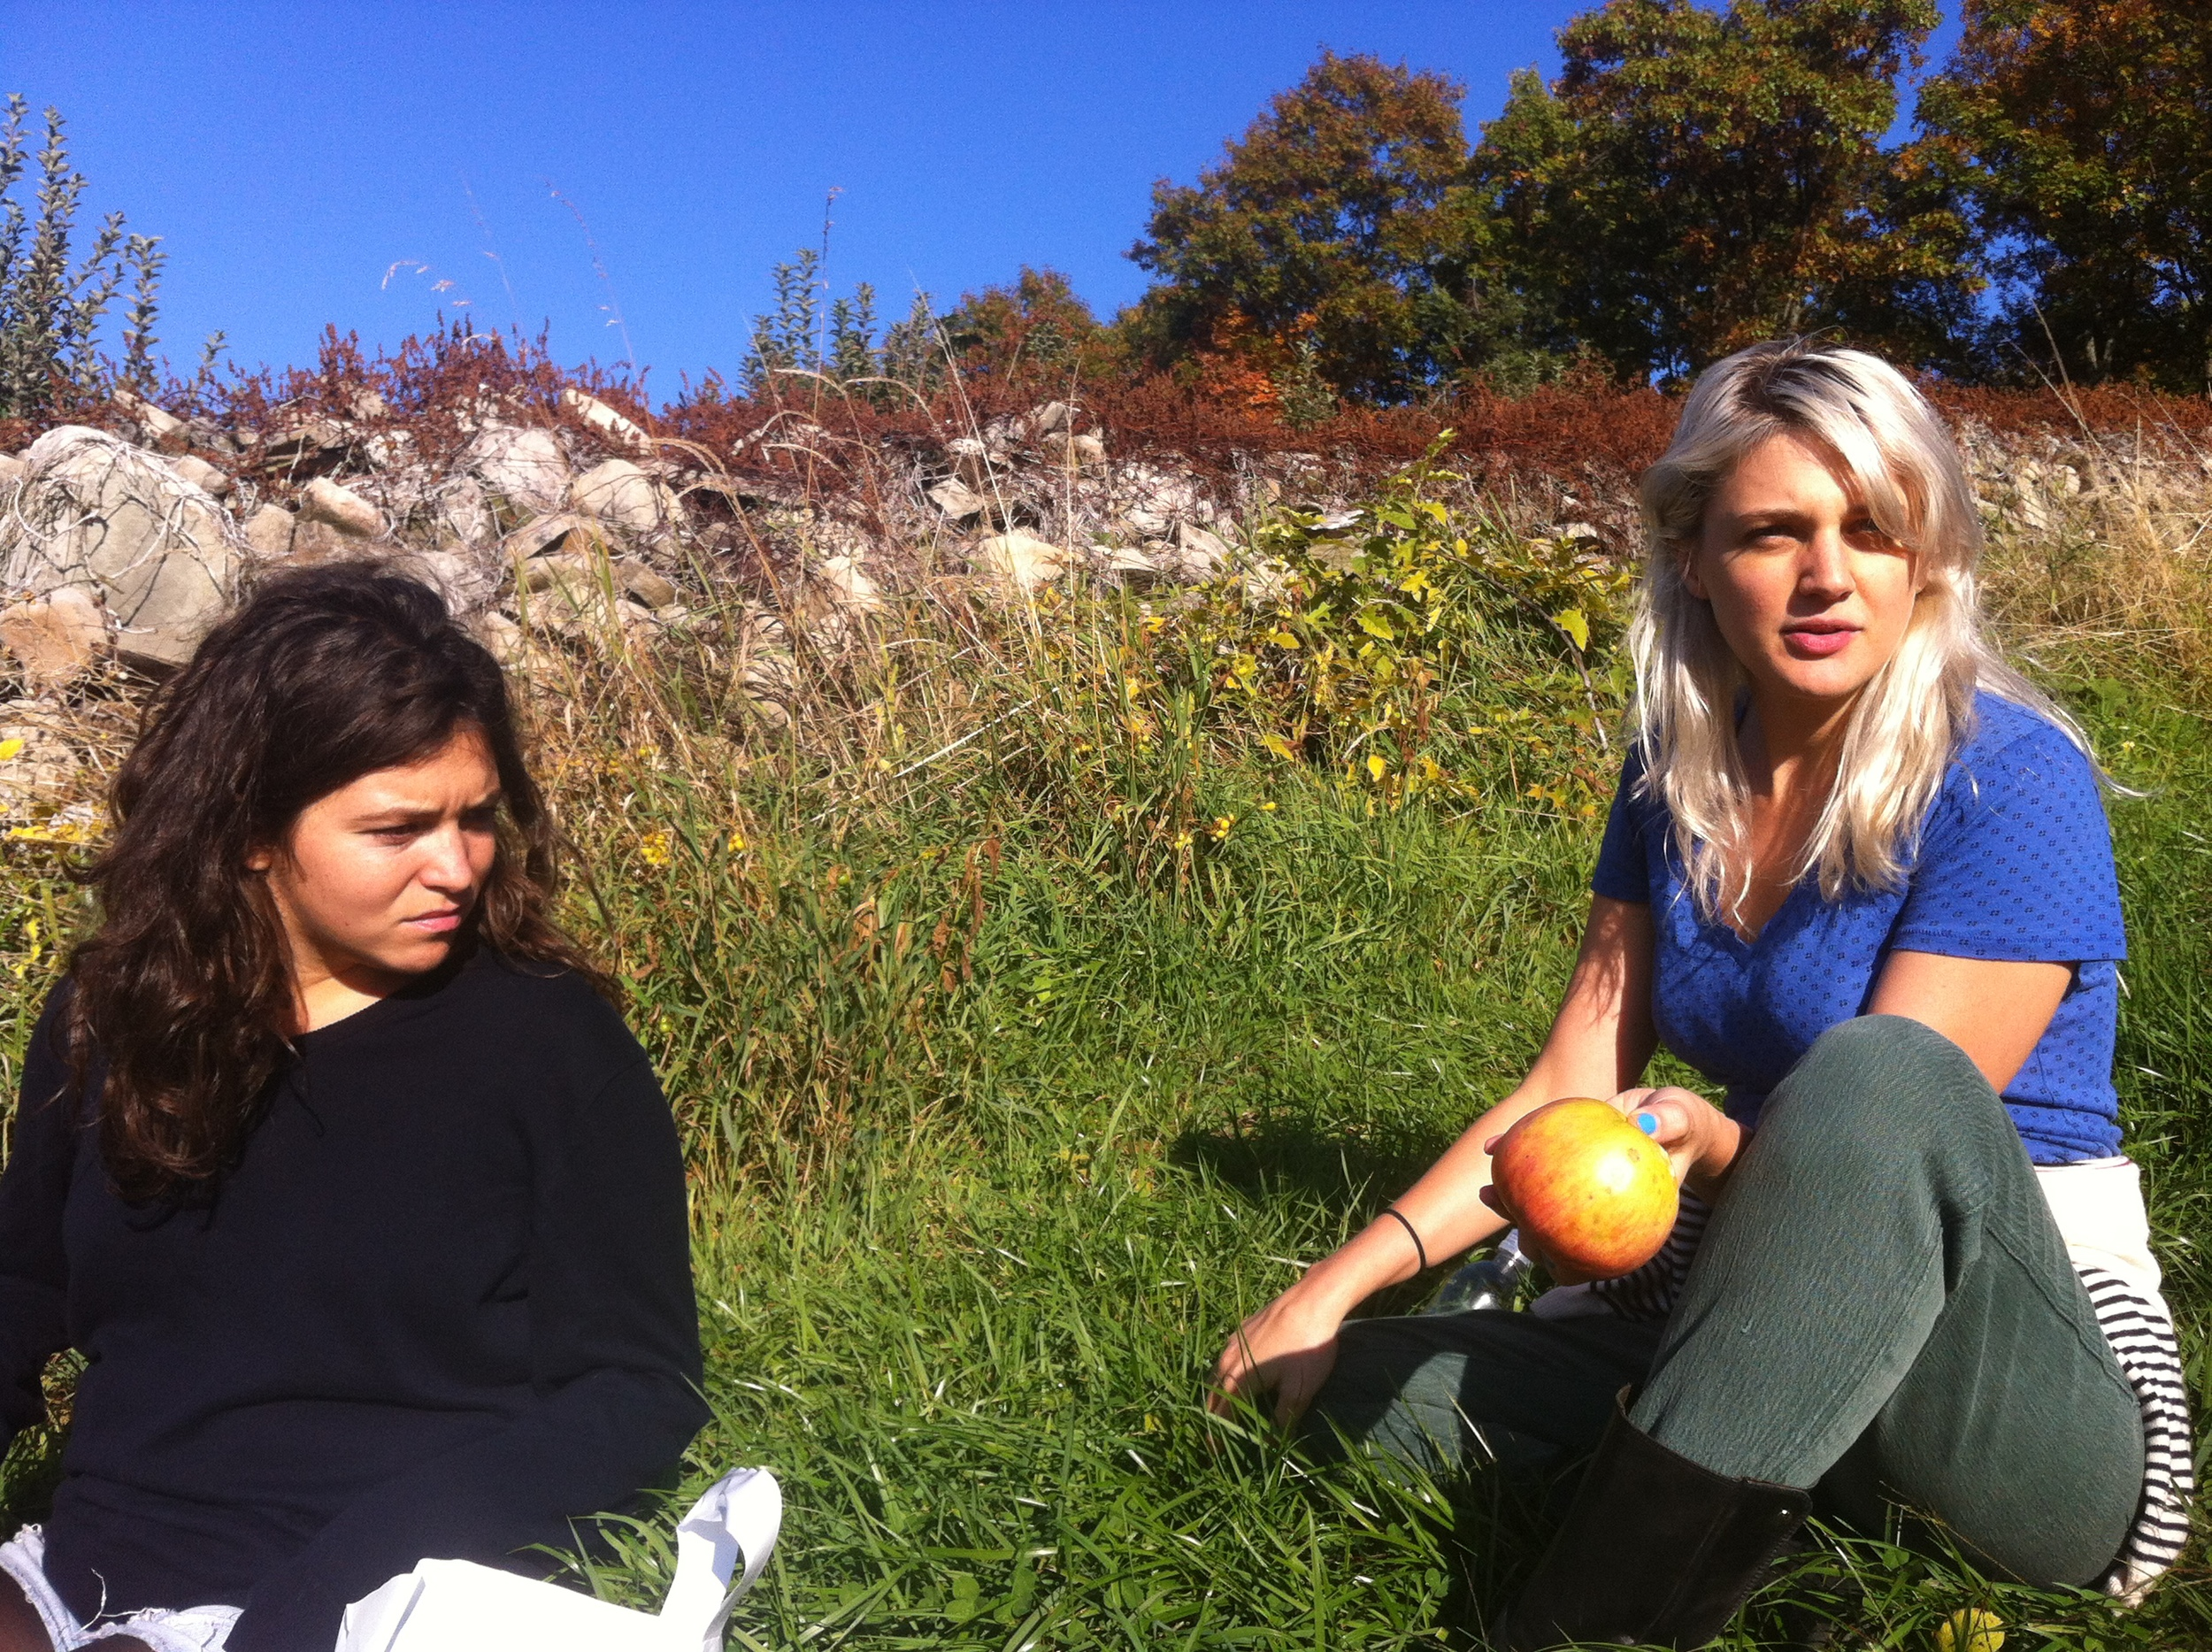 Gluten free girls enjoying the apples.